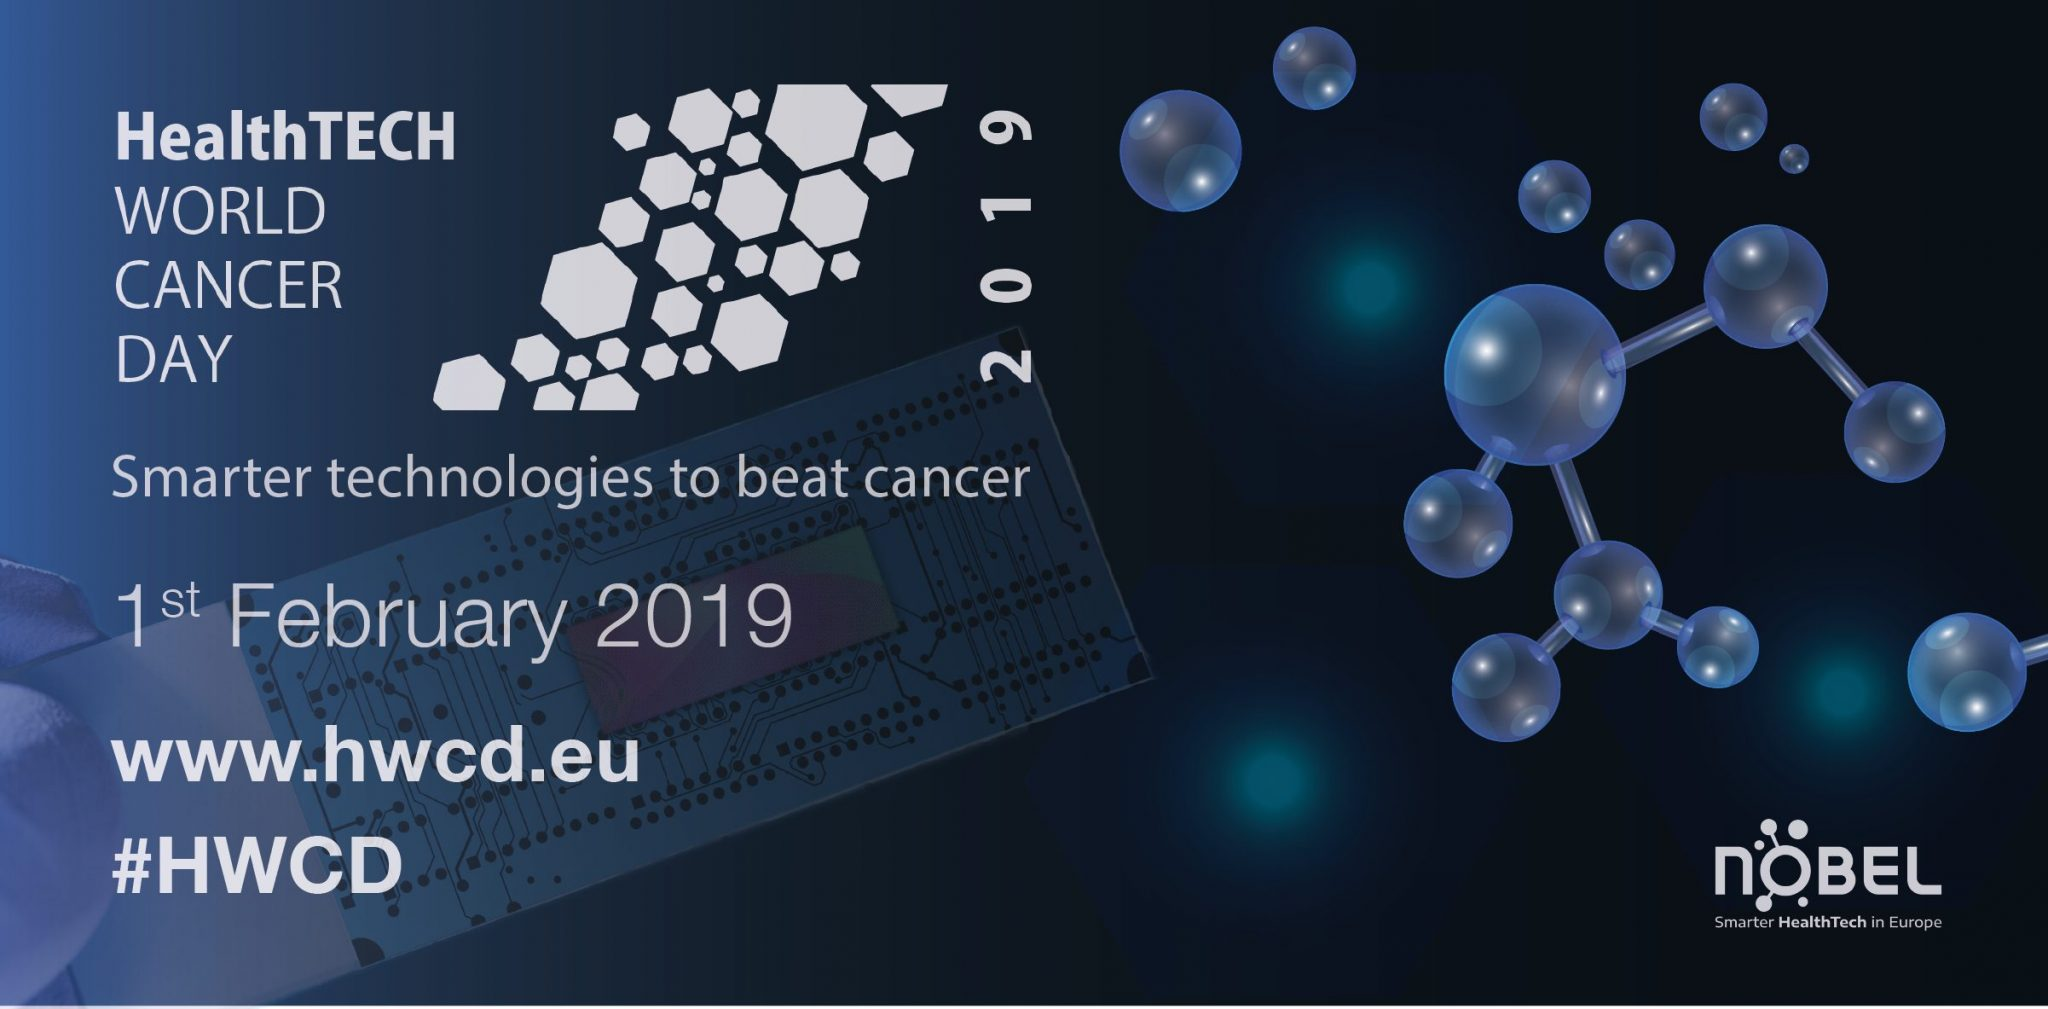 HealthTech World Cancer Day, Feb. 1st 2019